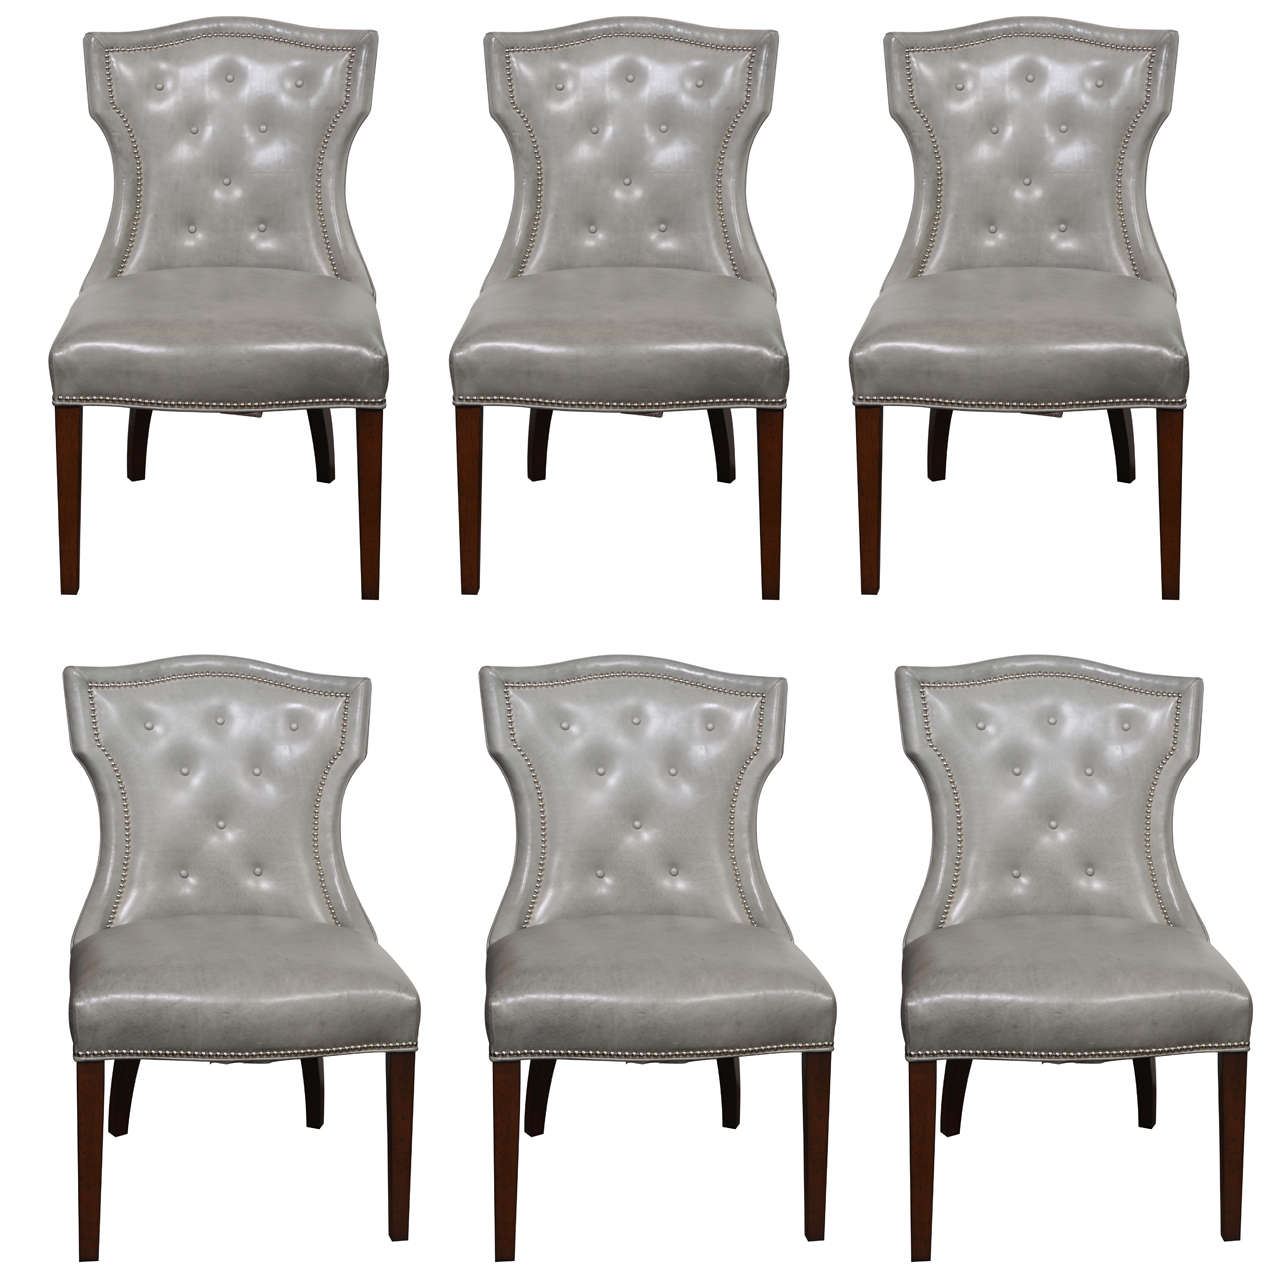 Awesome Wesley Hall Leather Chair At 1Stdibs Uwap Interior Chair Design Uwaporg